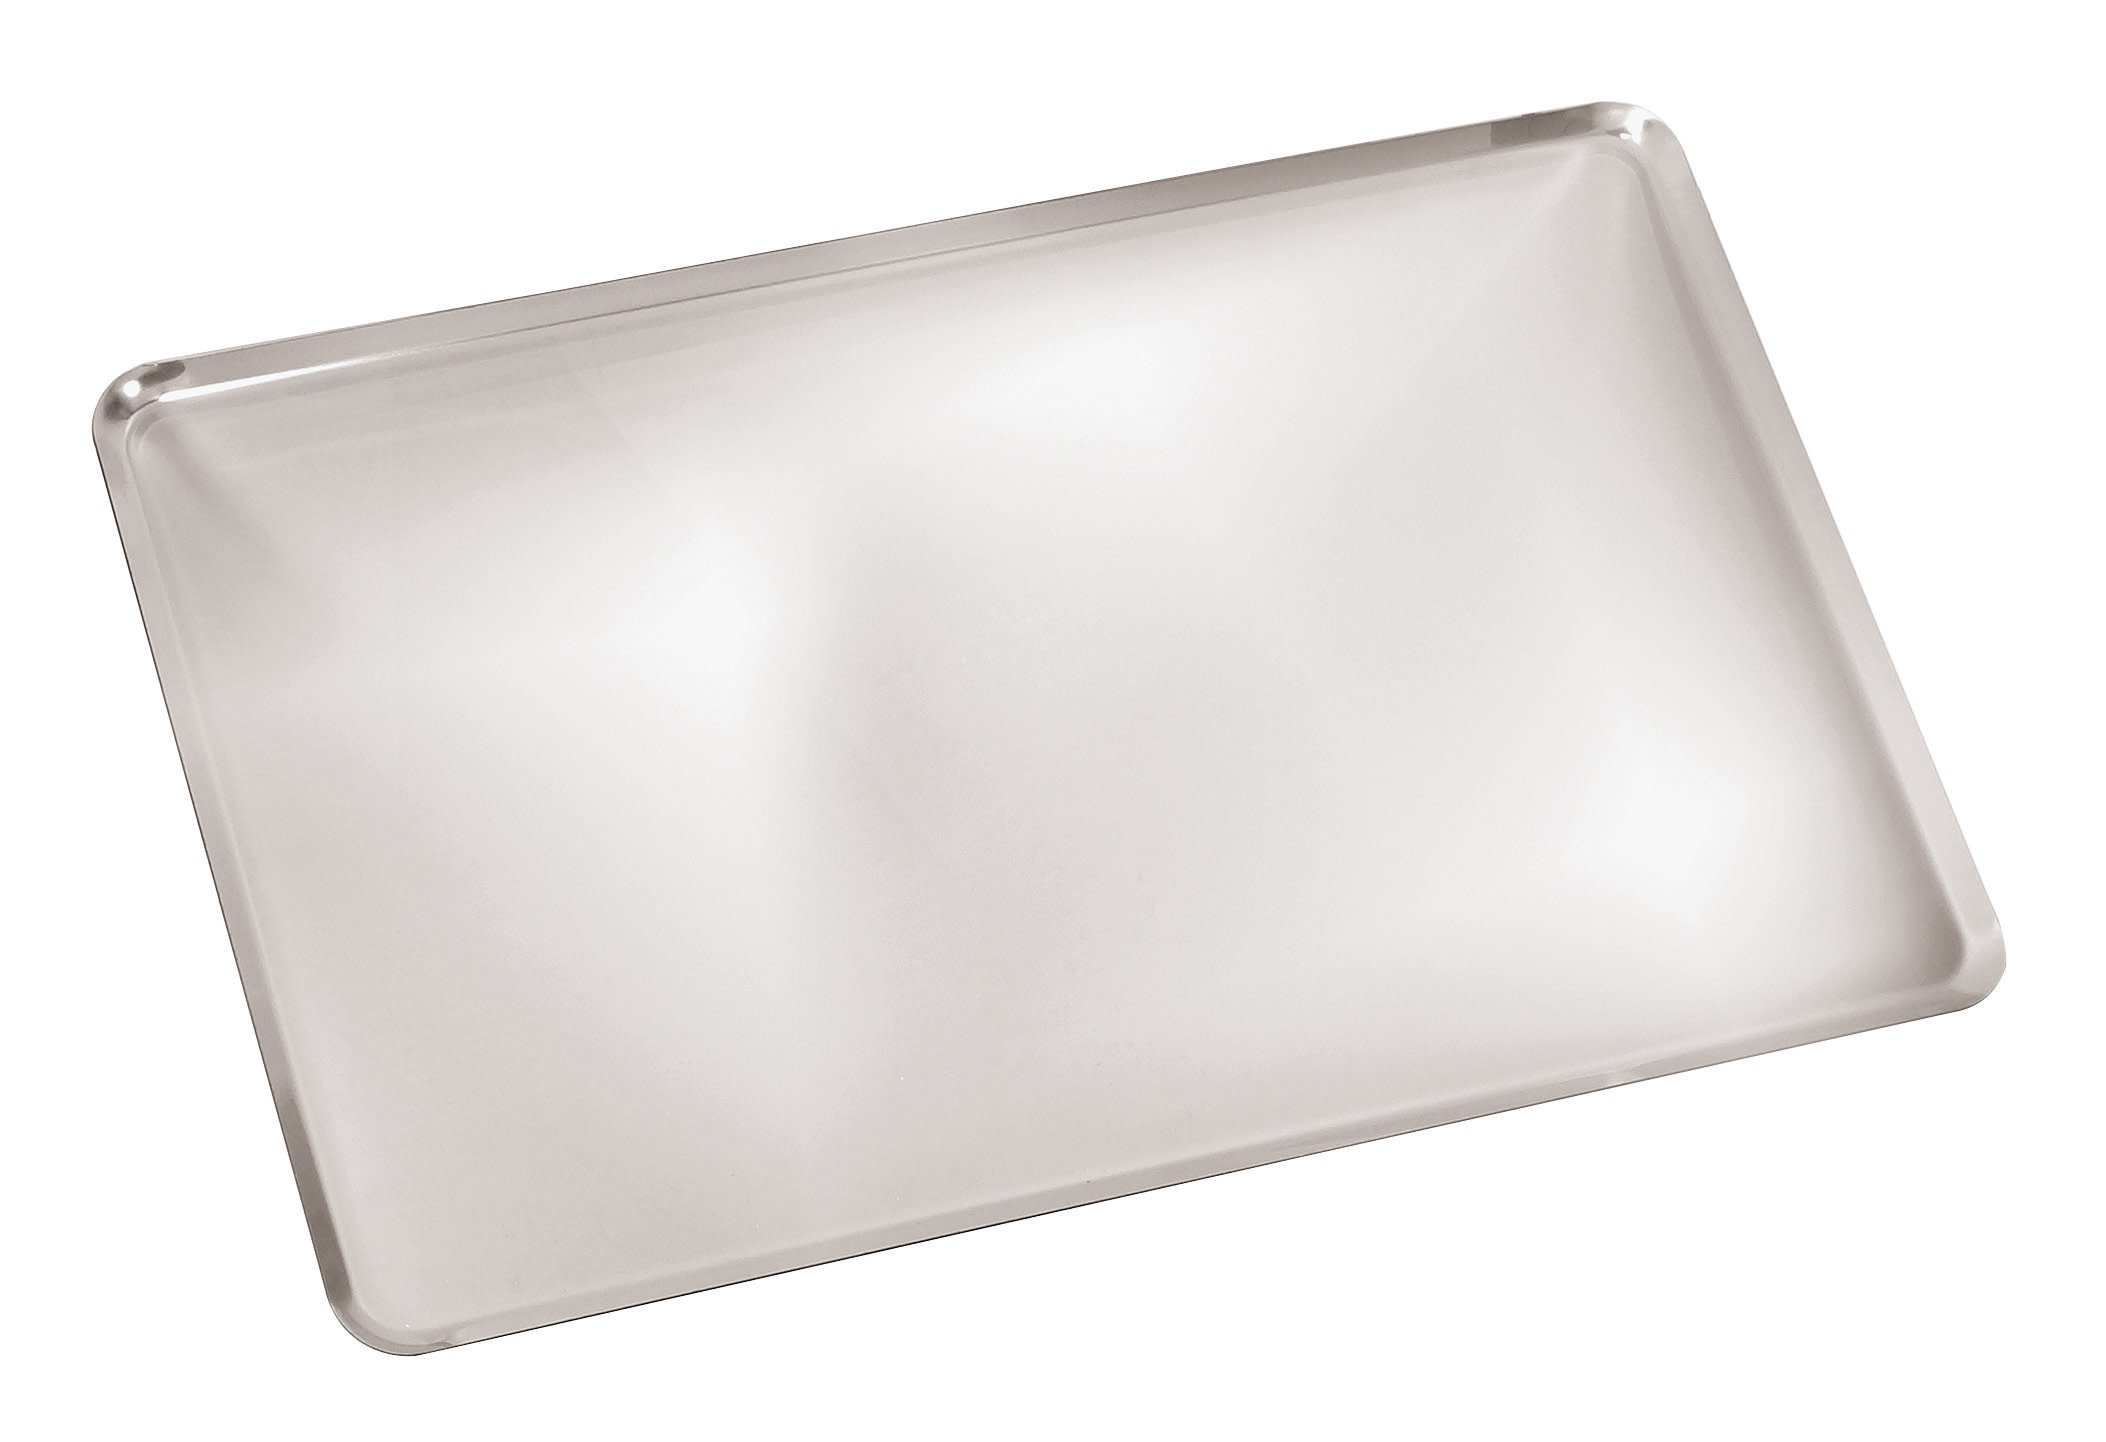 Paderno World Cuisine A4982293 Angled Sides Stainless Steel Baking Sheet, Gray